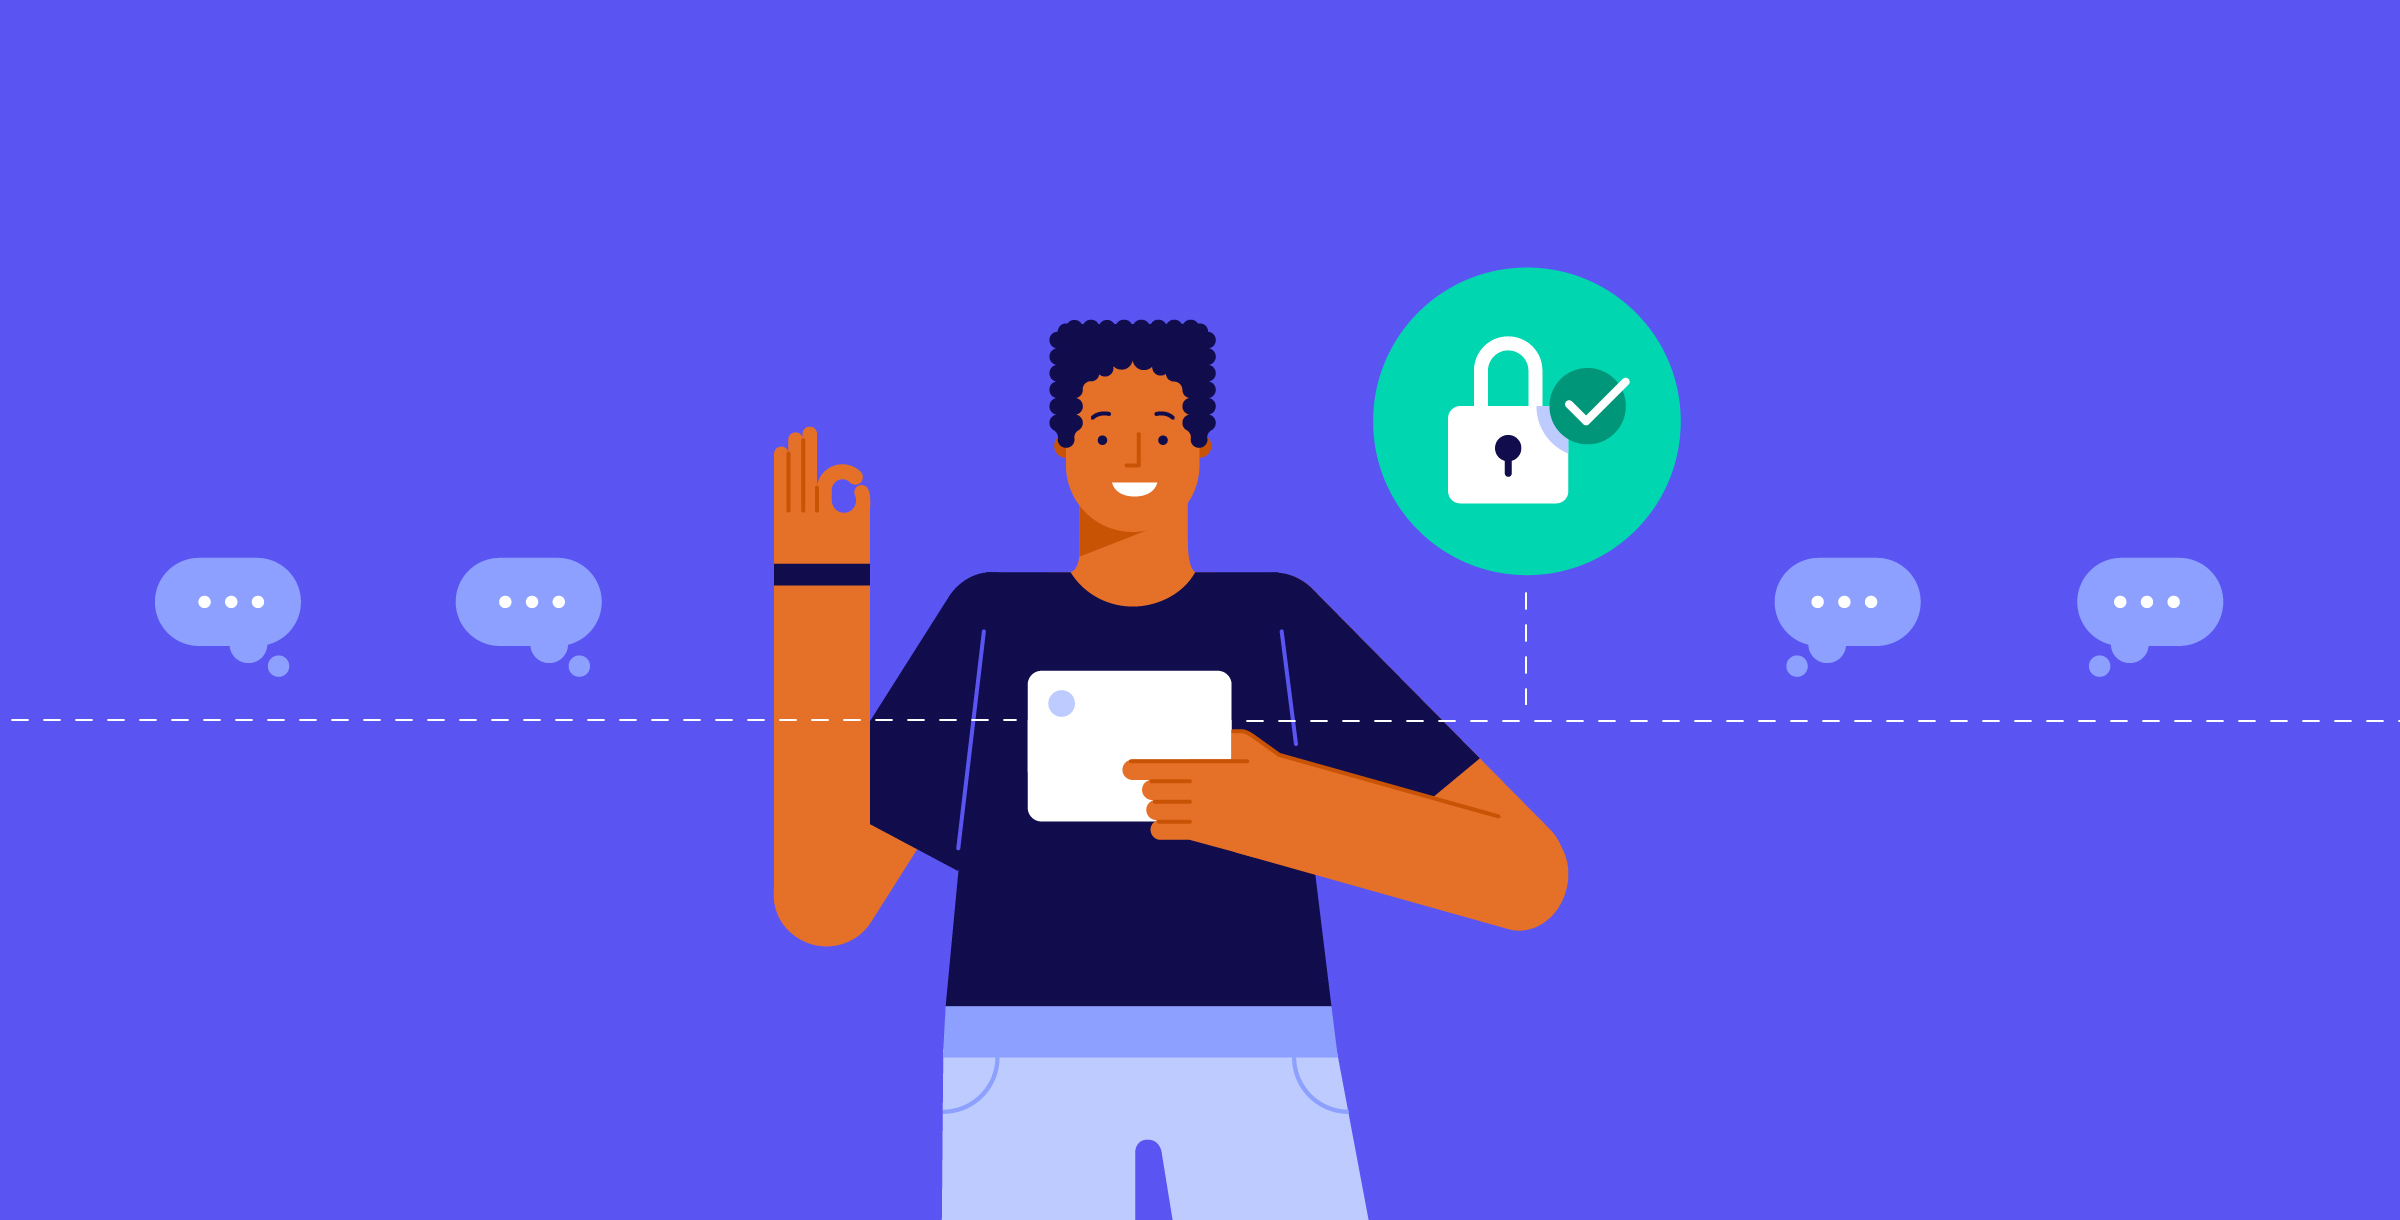 5 reasons to trust your privacy and data with Yalo